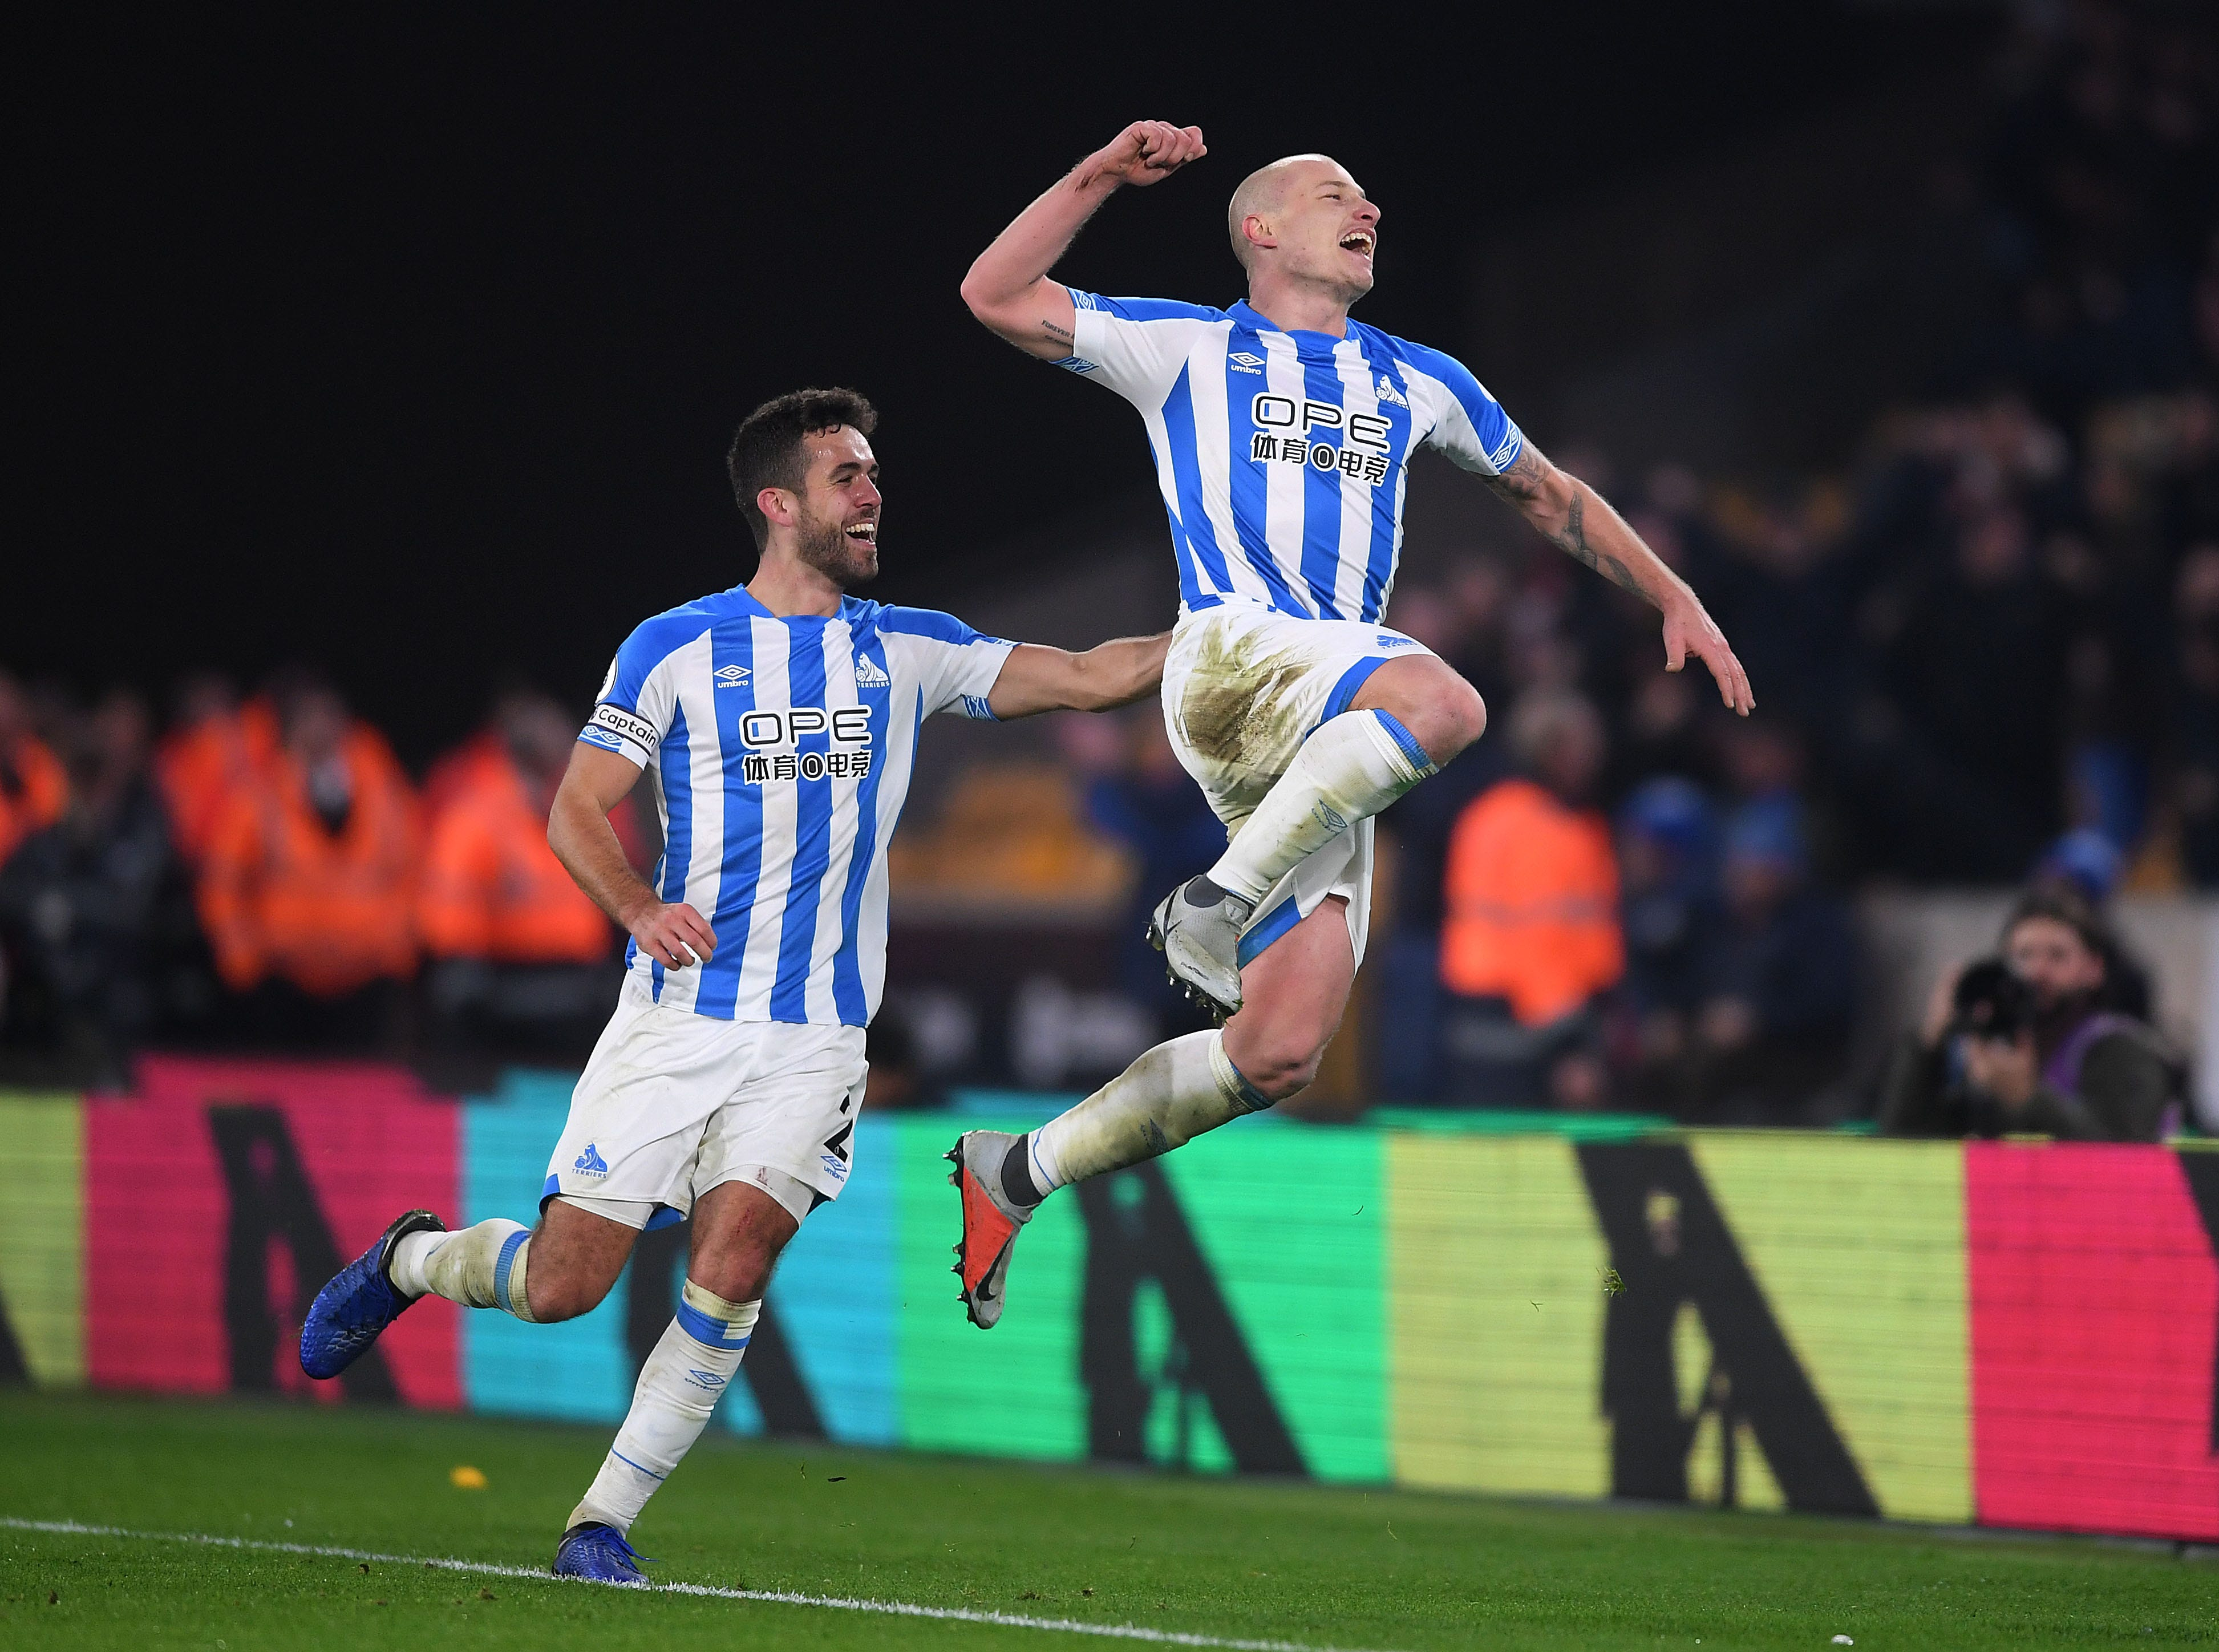 Aaron Mooy of Huddersfield celebrates after scoring his team's second goal against Wolves.